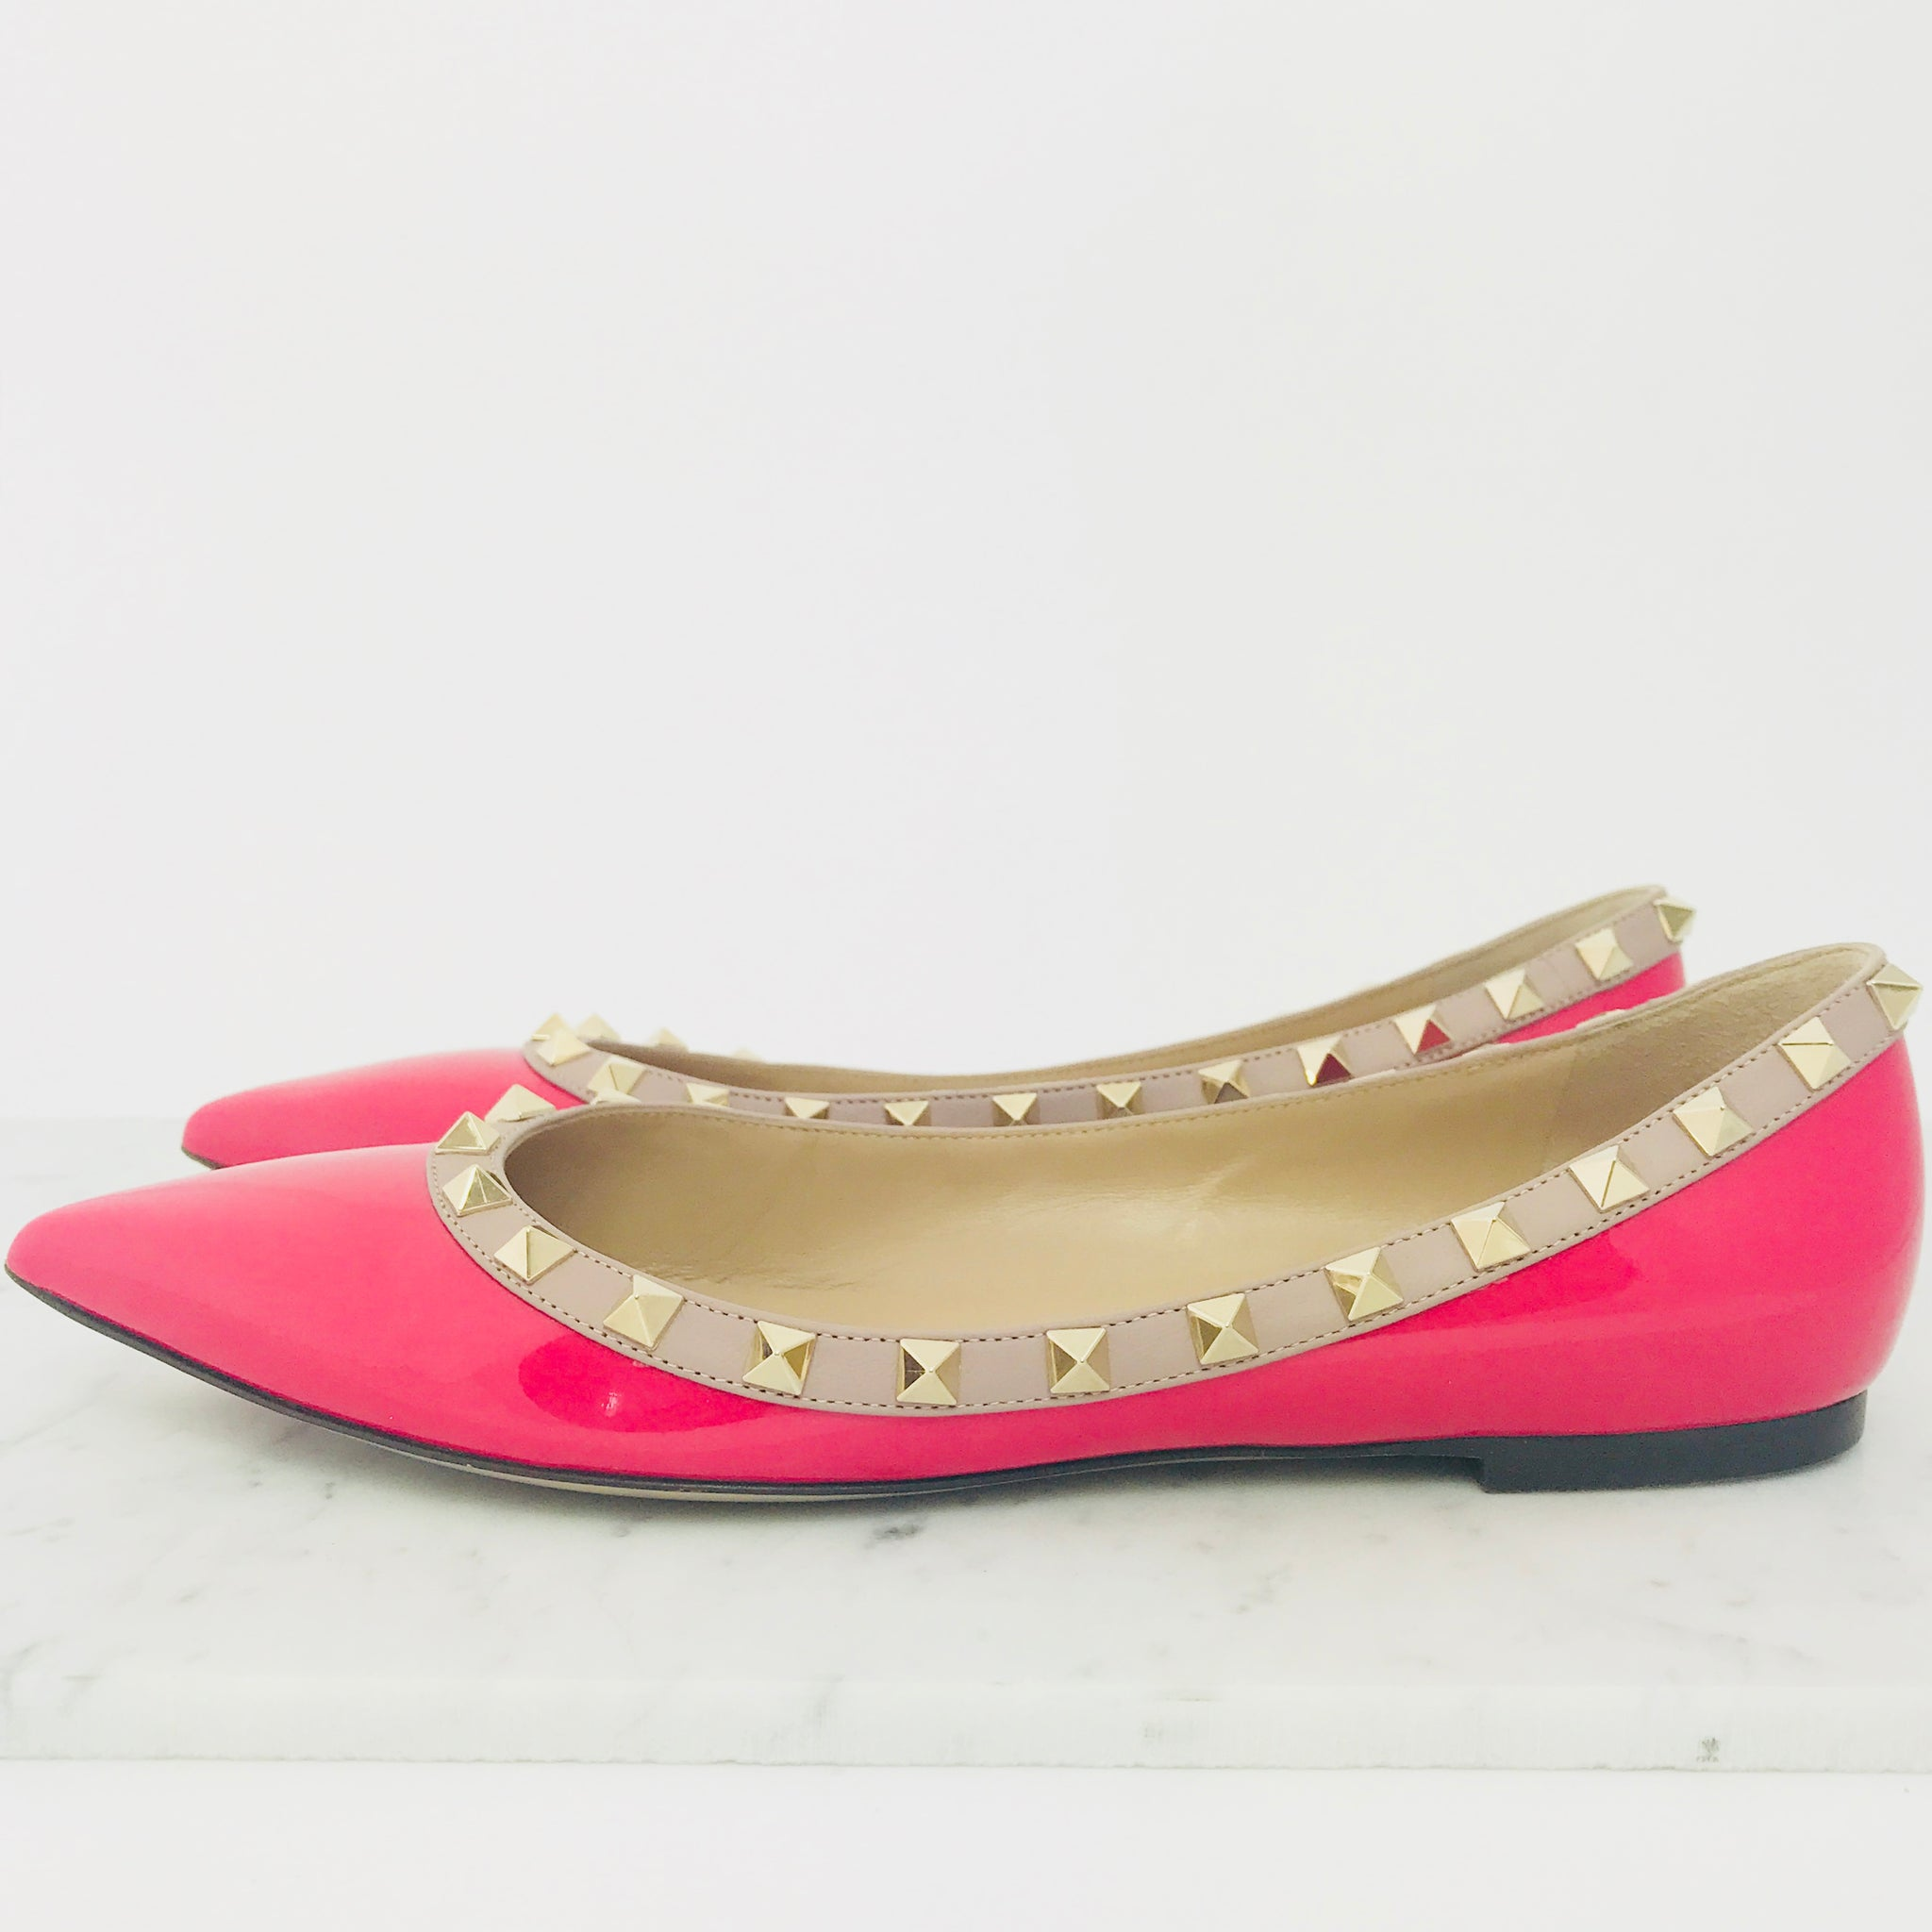 Valentino Patent Leather Rockstud Flats (size 38.5 / fit 38-38.5)